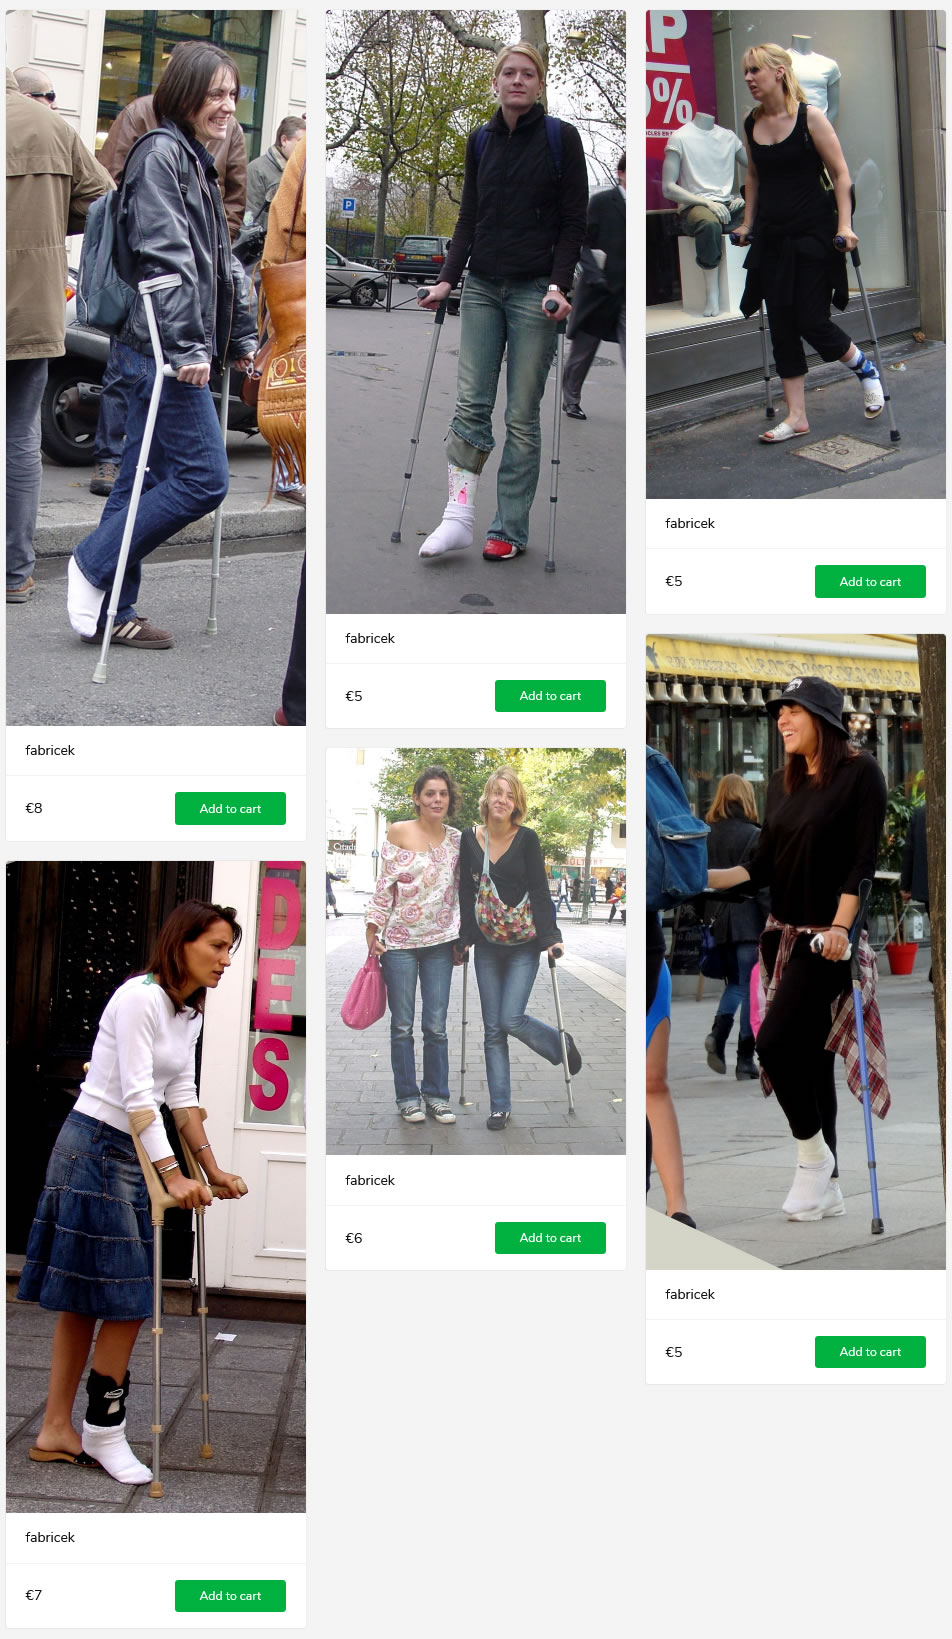 6 sightings of women with casted and/or braced legs - all on crutches.